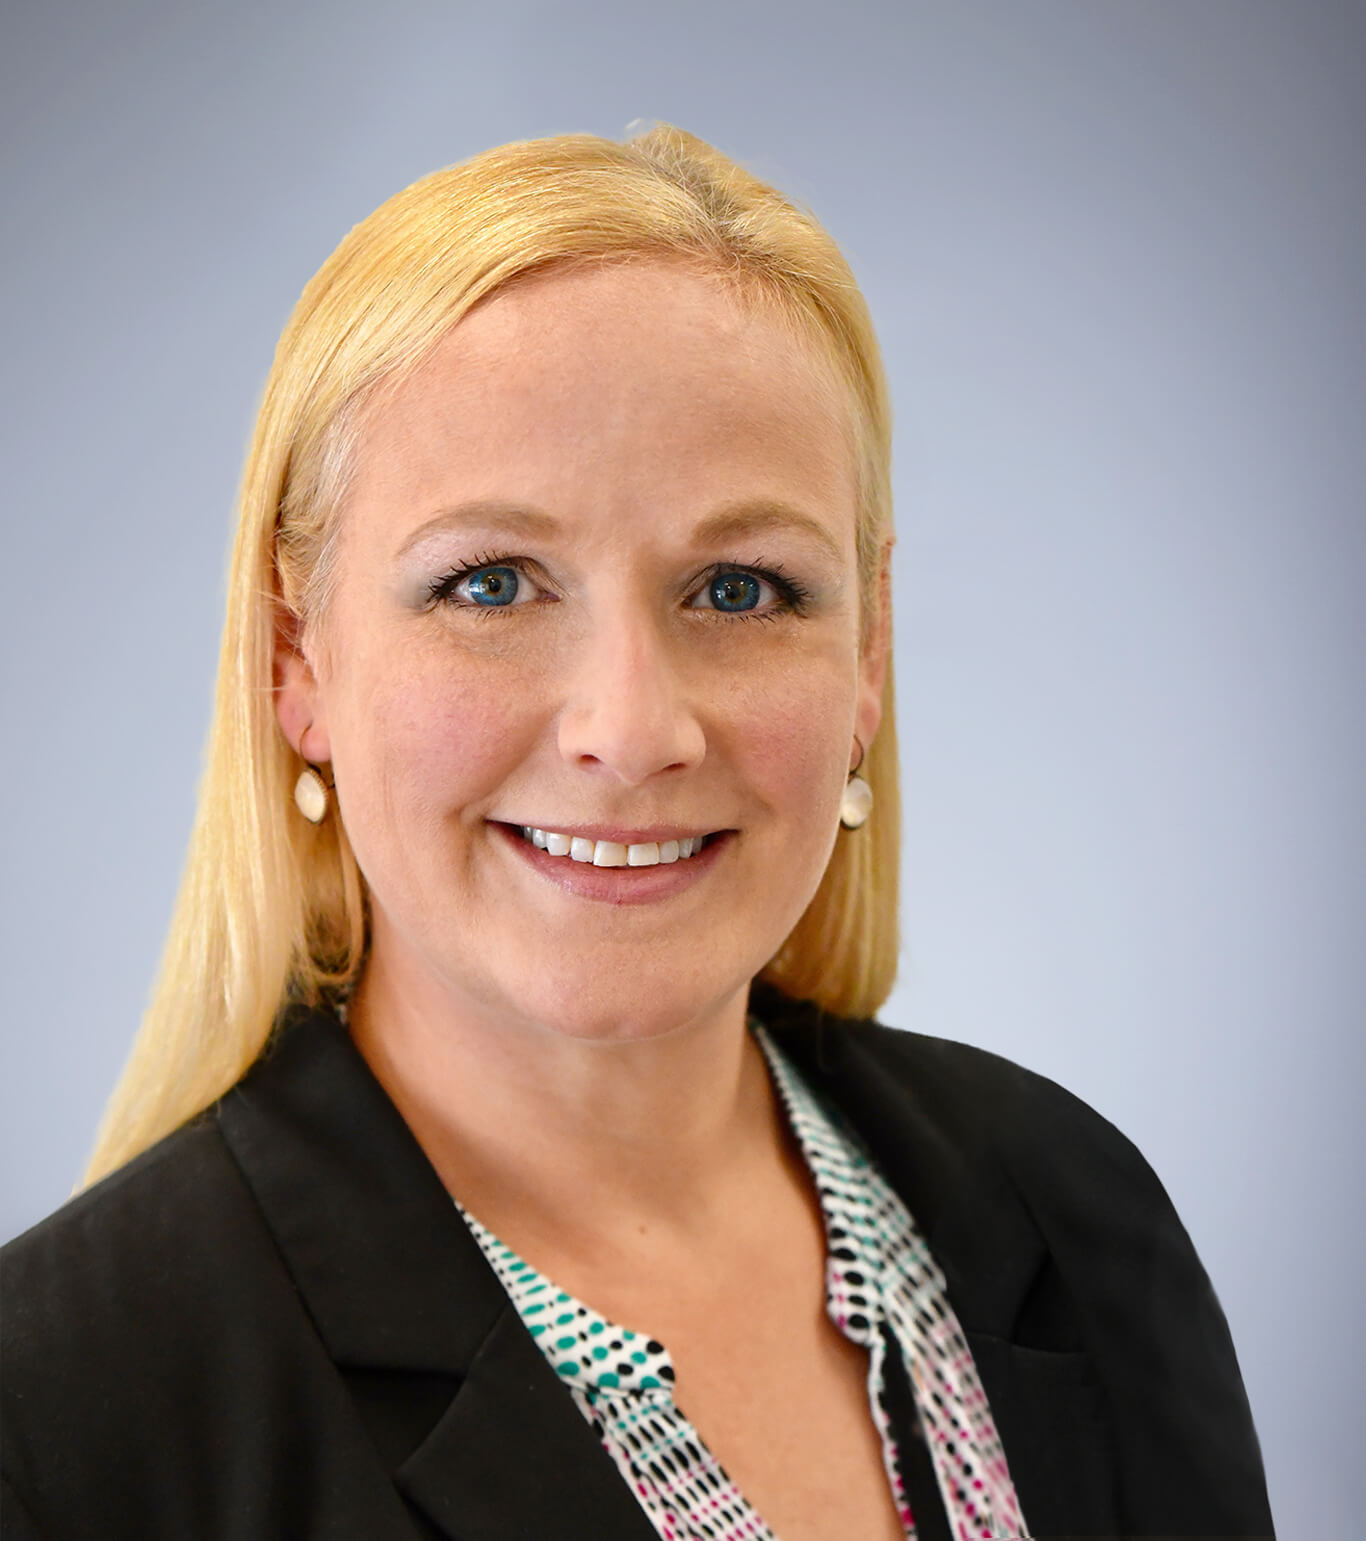 Rebecca A. Holmes - Account Manager, Insurance Broker